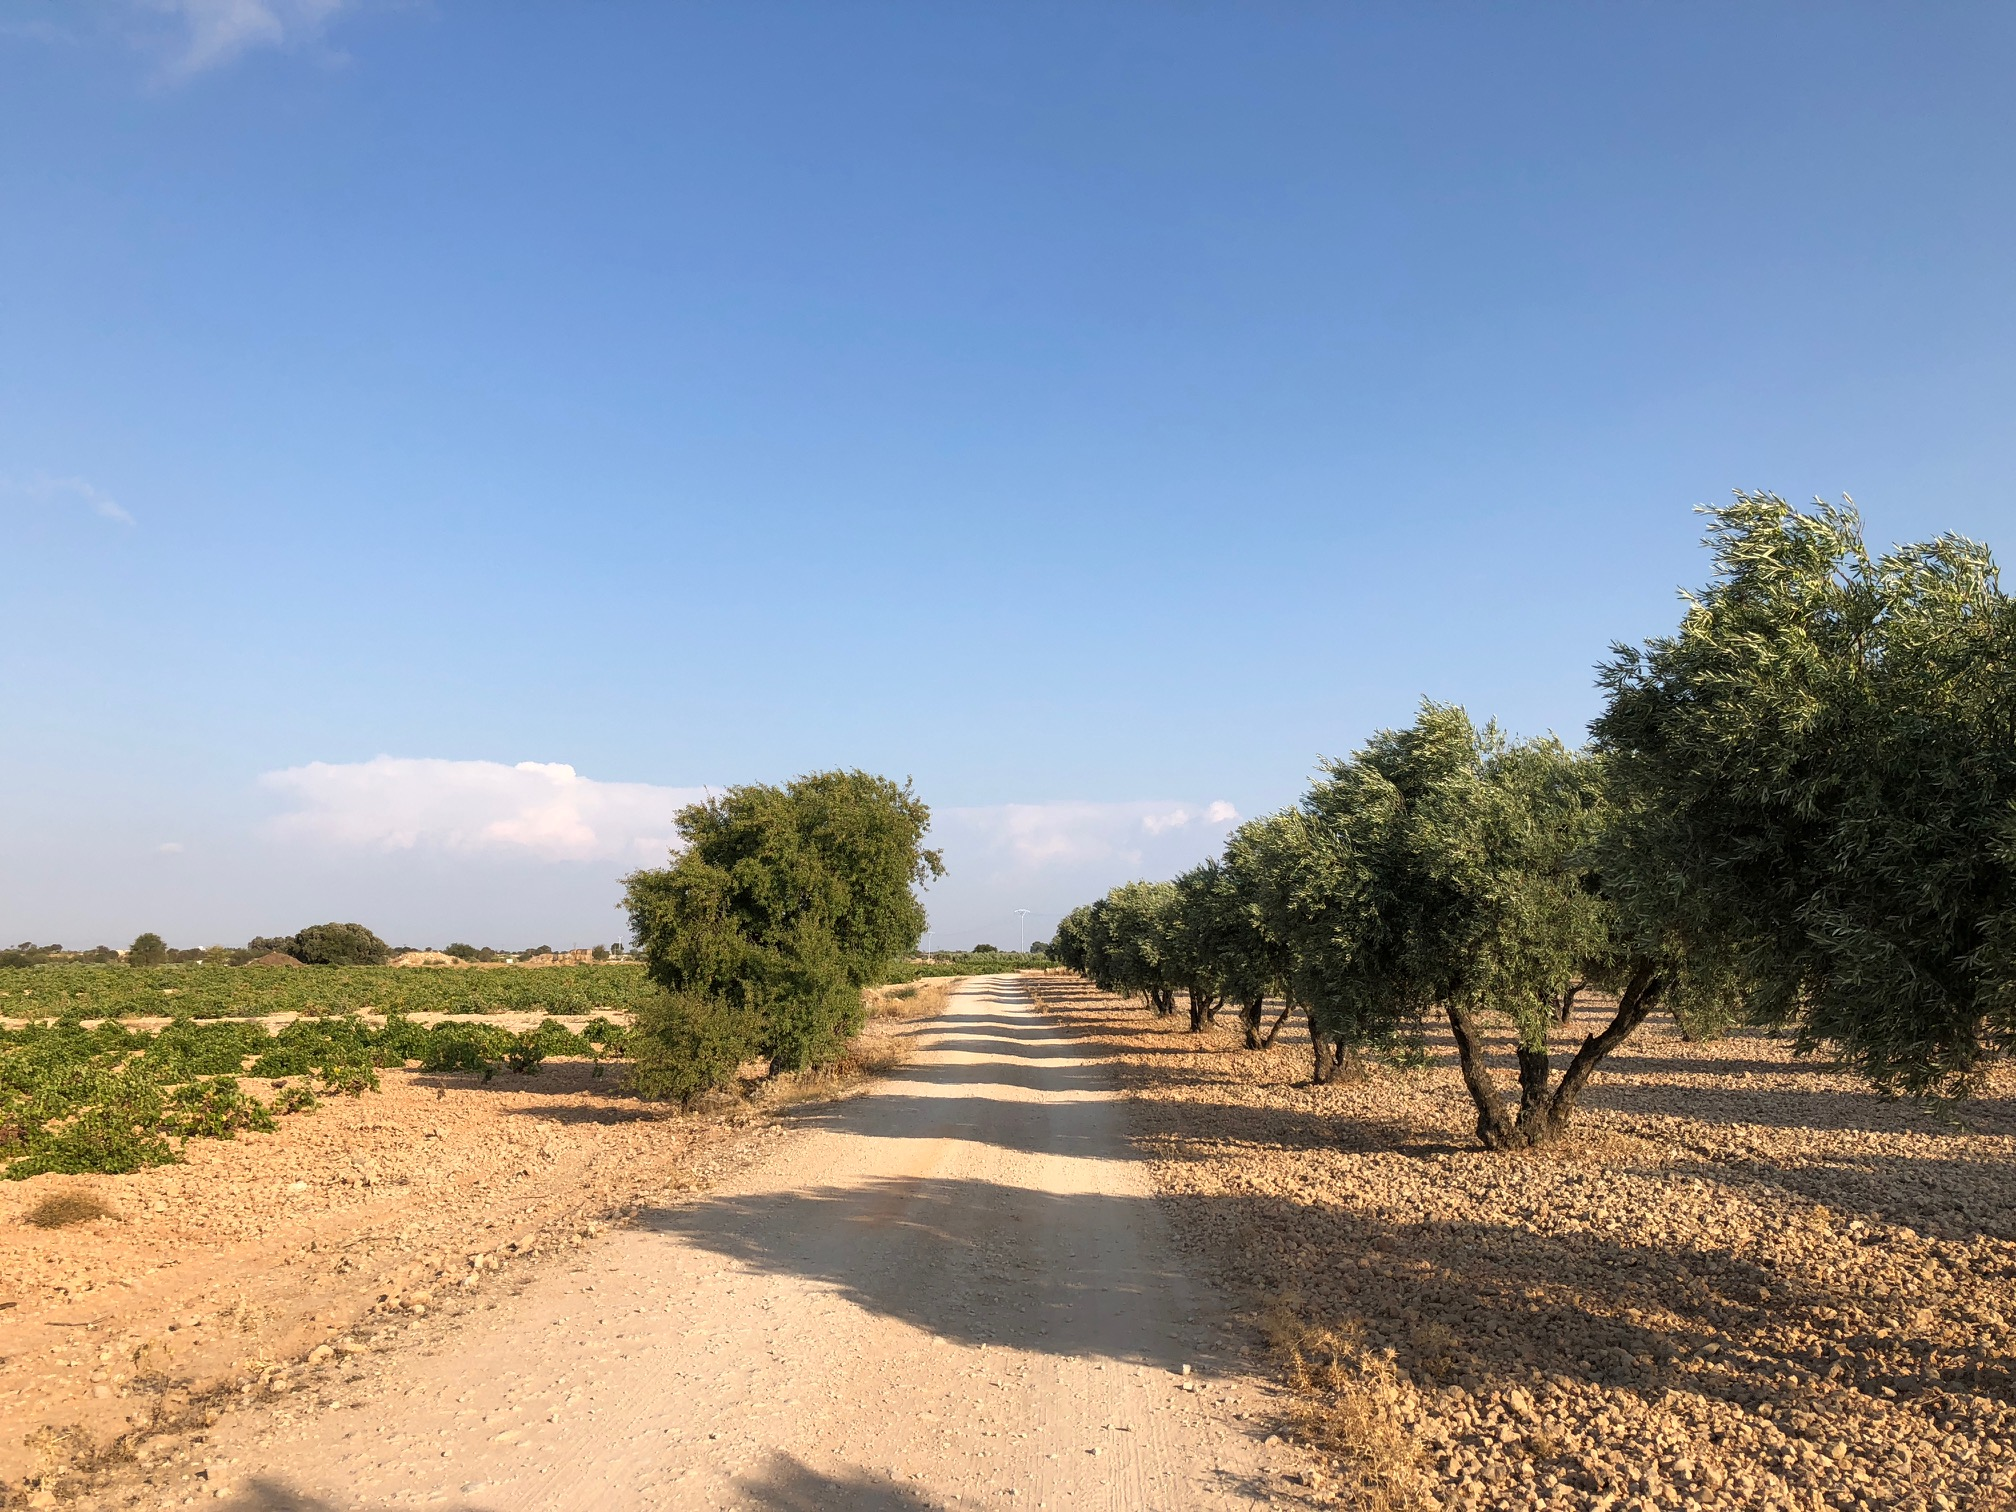 INTENSIVE FARMING ON BOTH SIDES OF THE ROAD